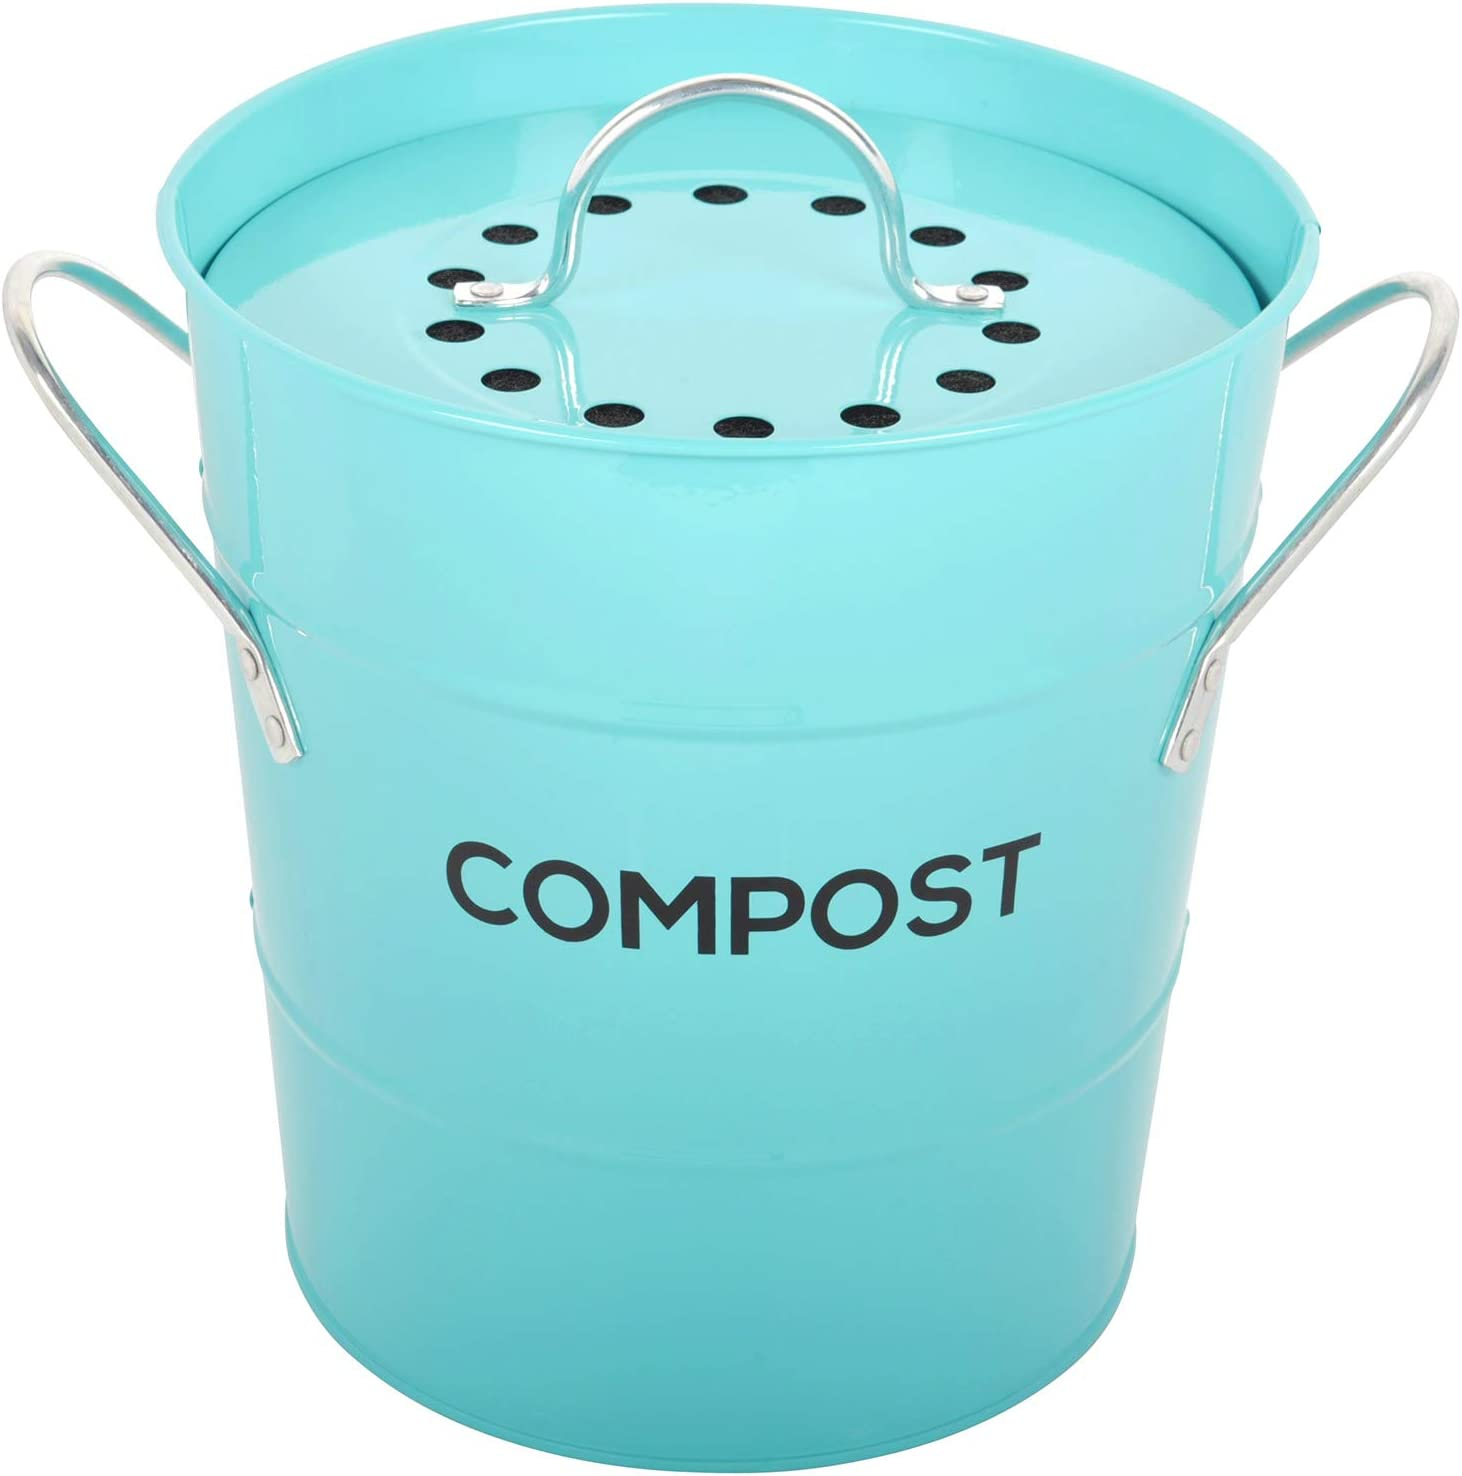 INDOOR KITCHEN COMPOST BIN by Spigo, Great for Food Scraps, Includes Charcoal Filter For Odor Absorbing, Removable Clean Plastic Bucket, Handles, Durable Stainless Retro Design, 1 Gallon, Turquoise